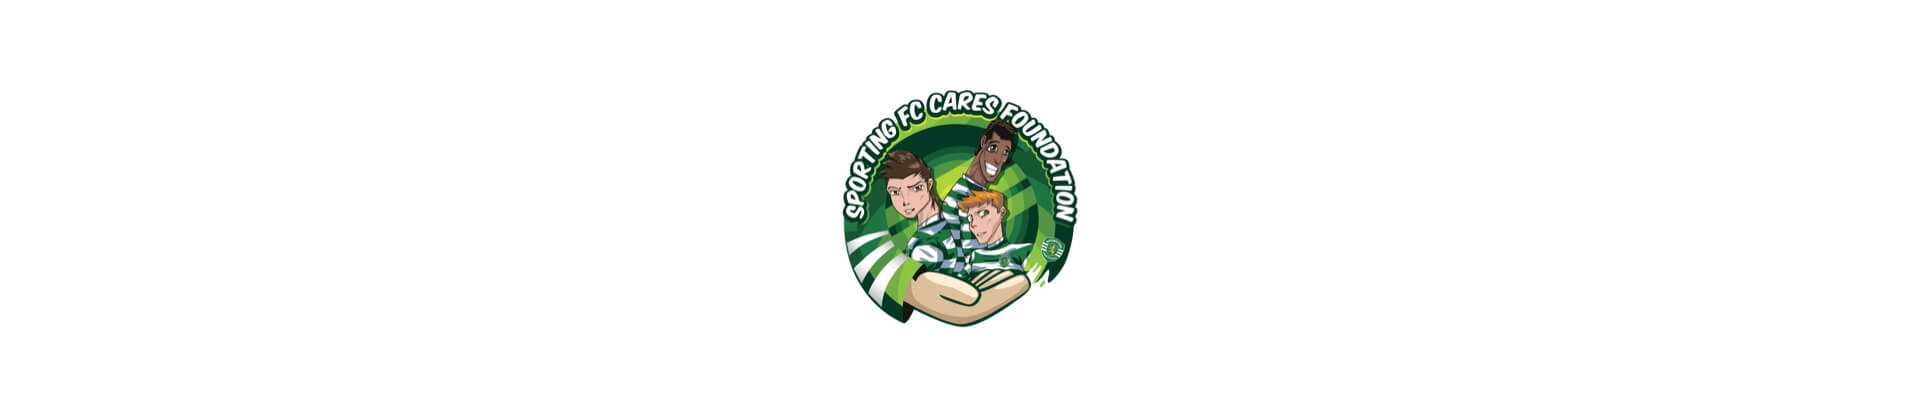 Sporting FC Cares - logo background